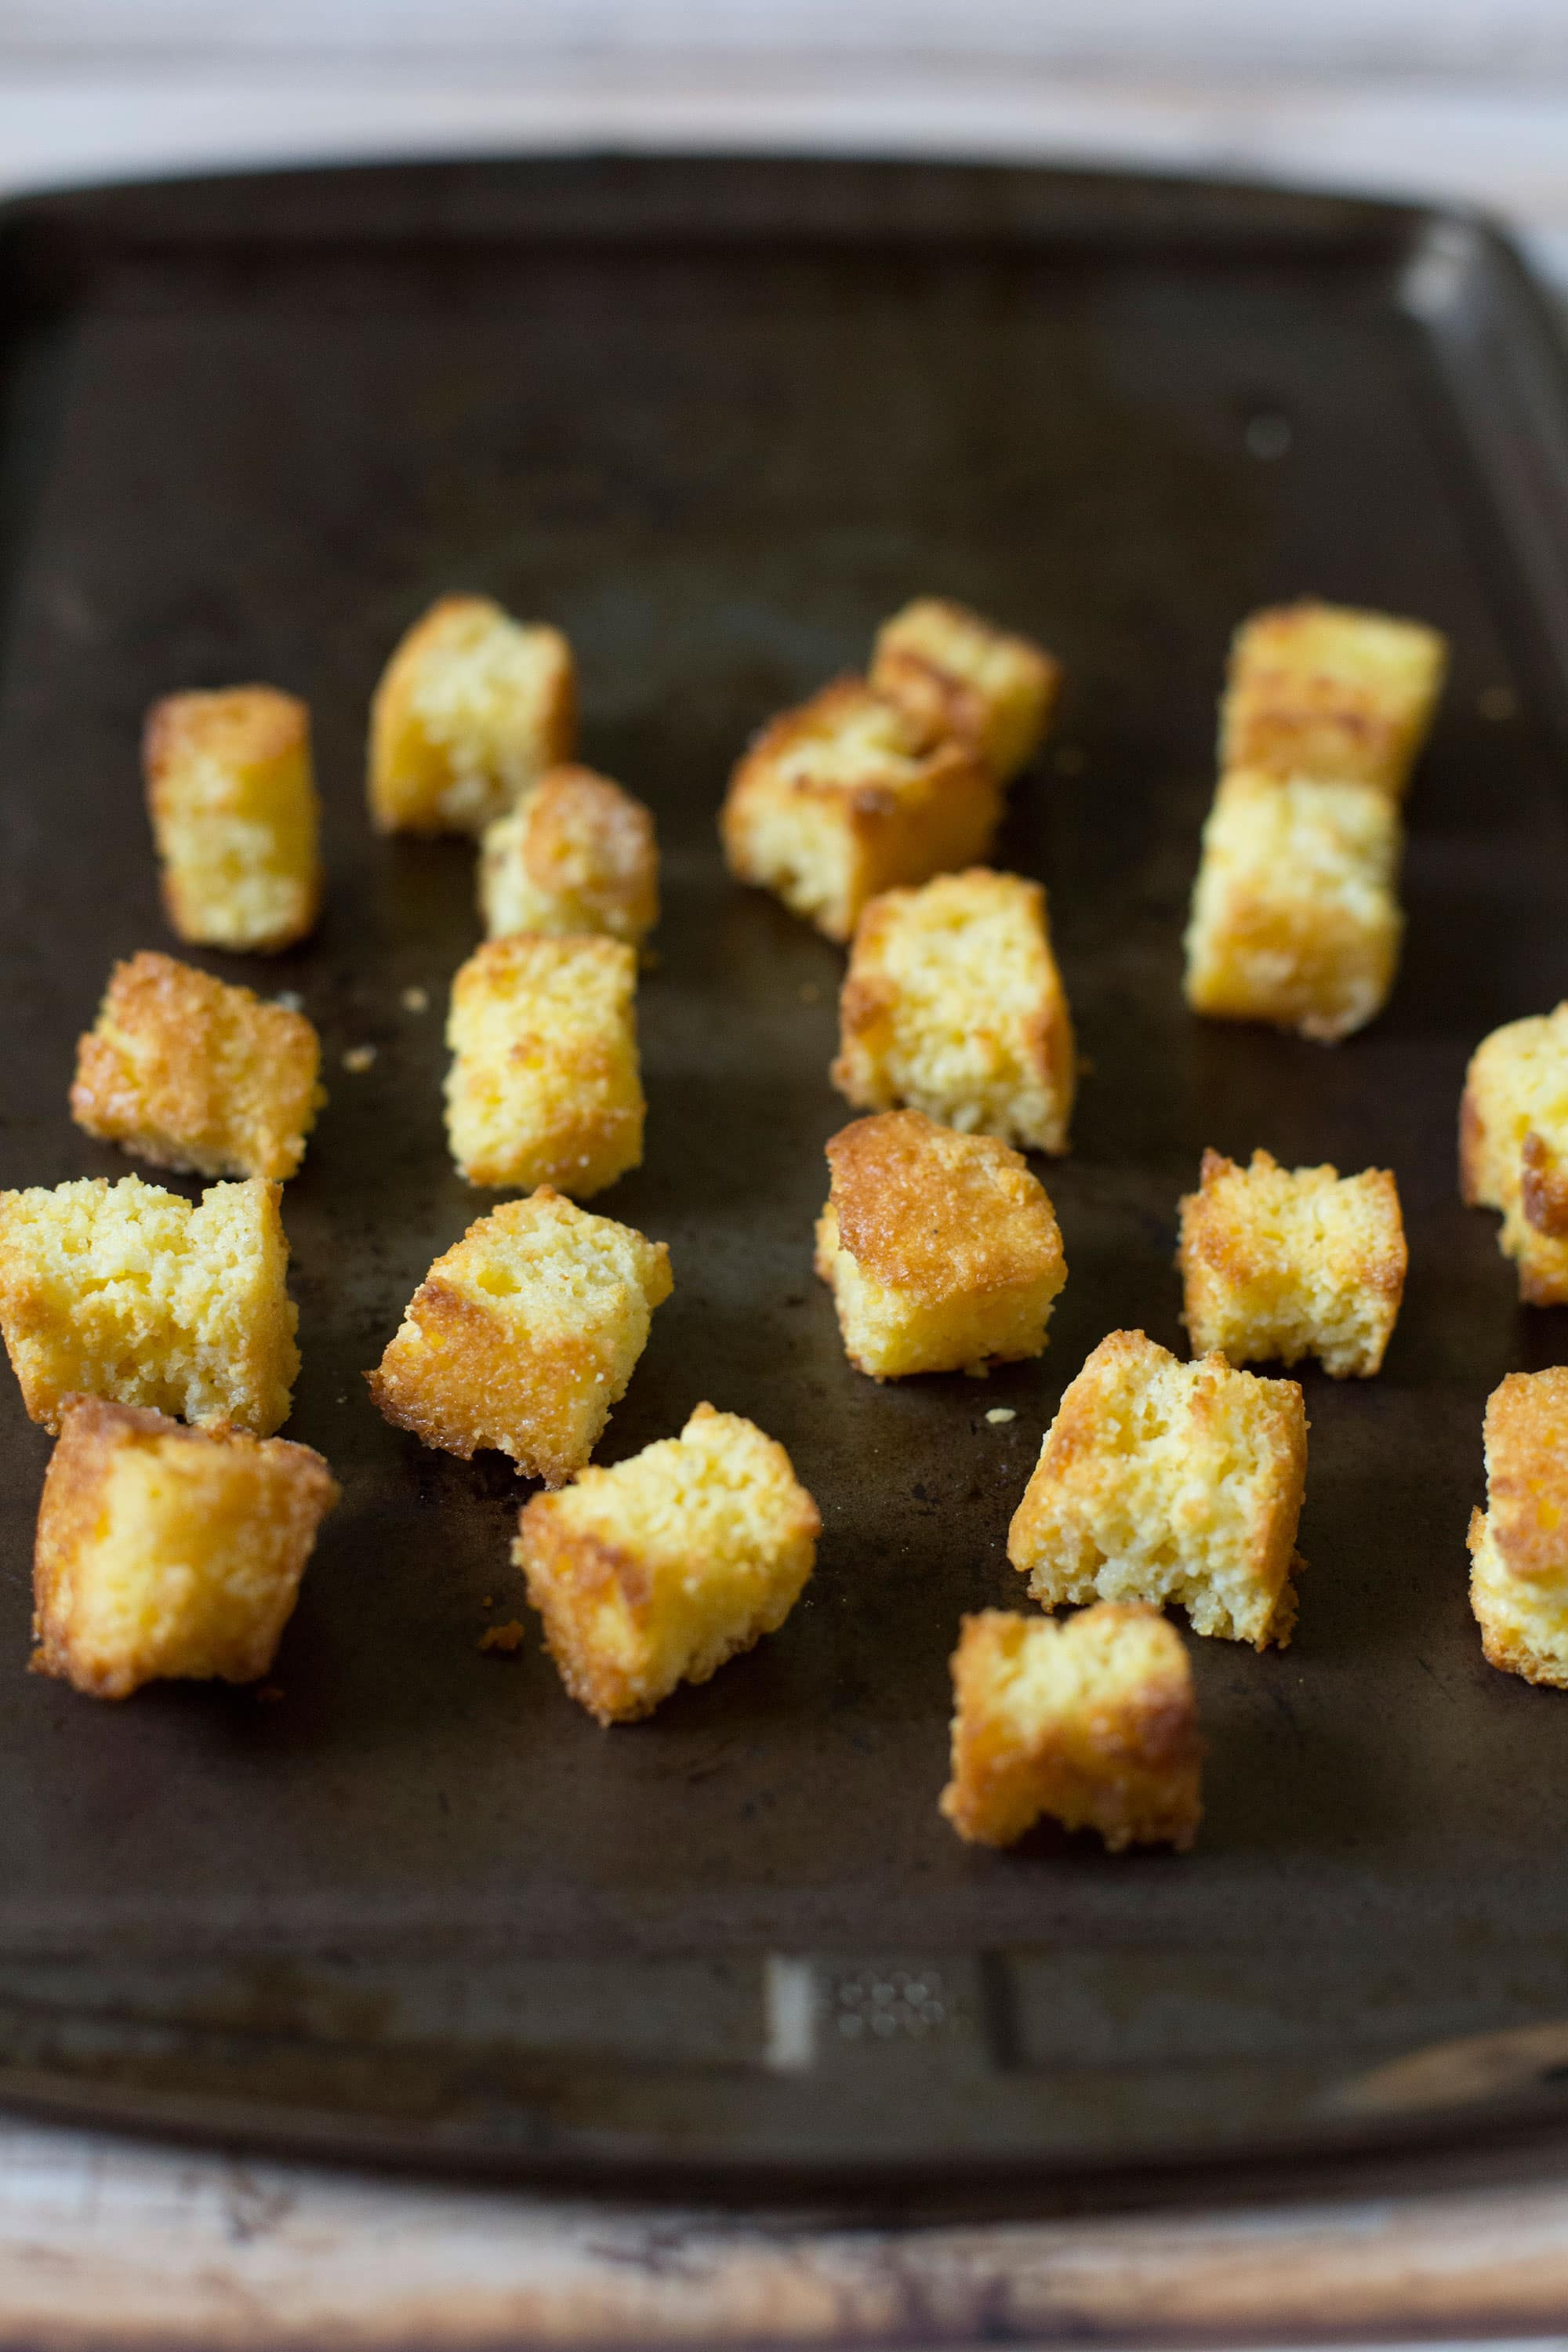 Homemade Cornbread Croutons, I'll never buy store-bought croutons again!